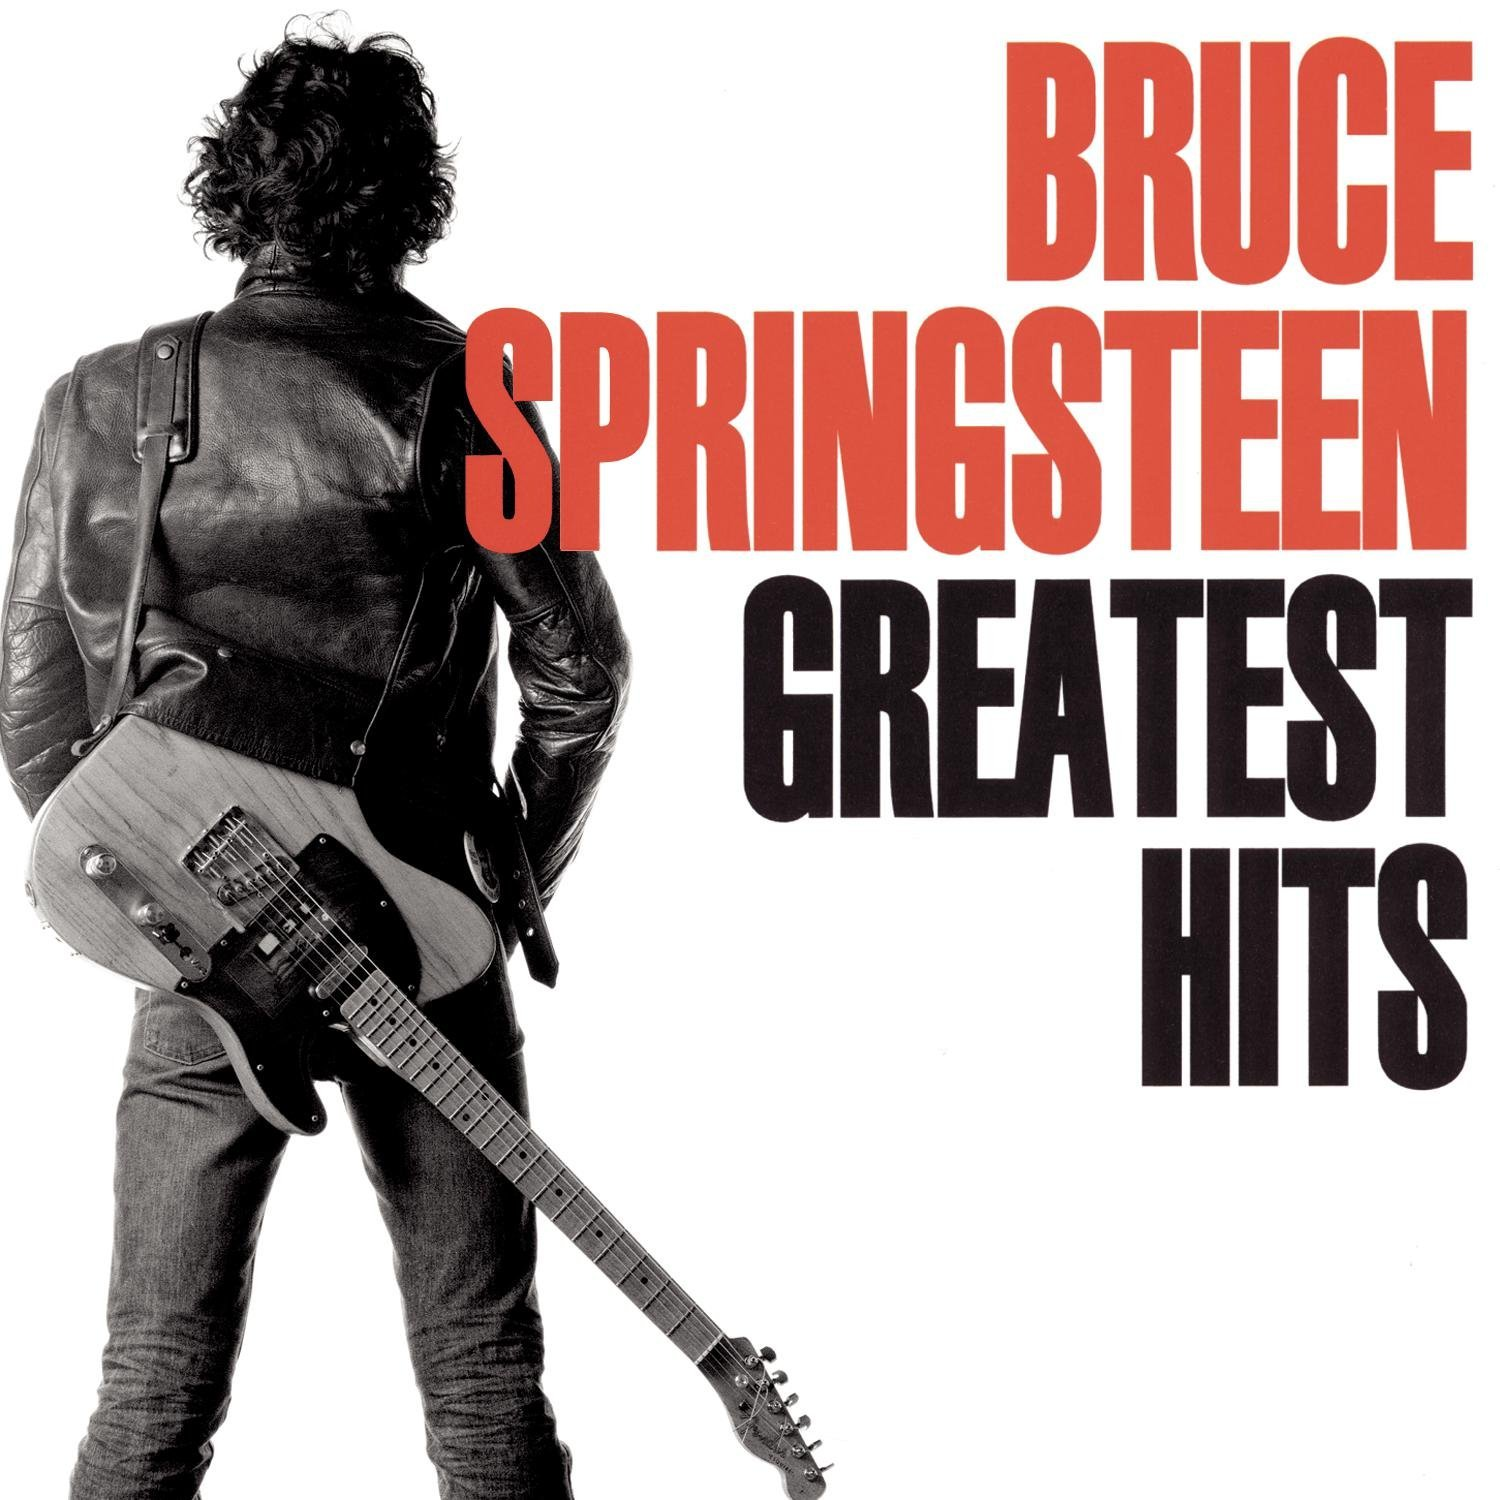 Art for Born in the U.S.A. by Bruce Springsteen